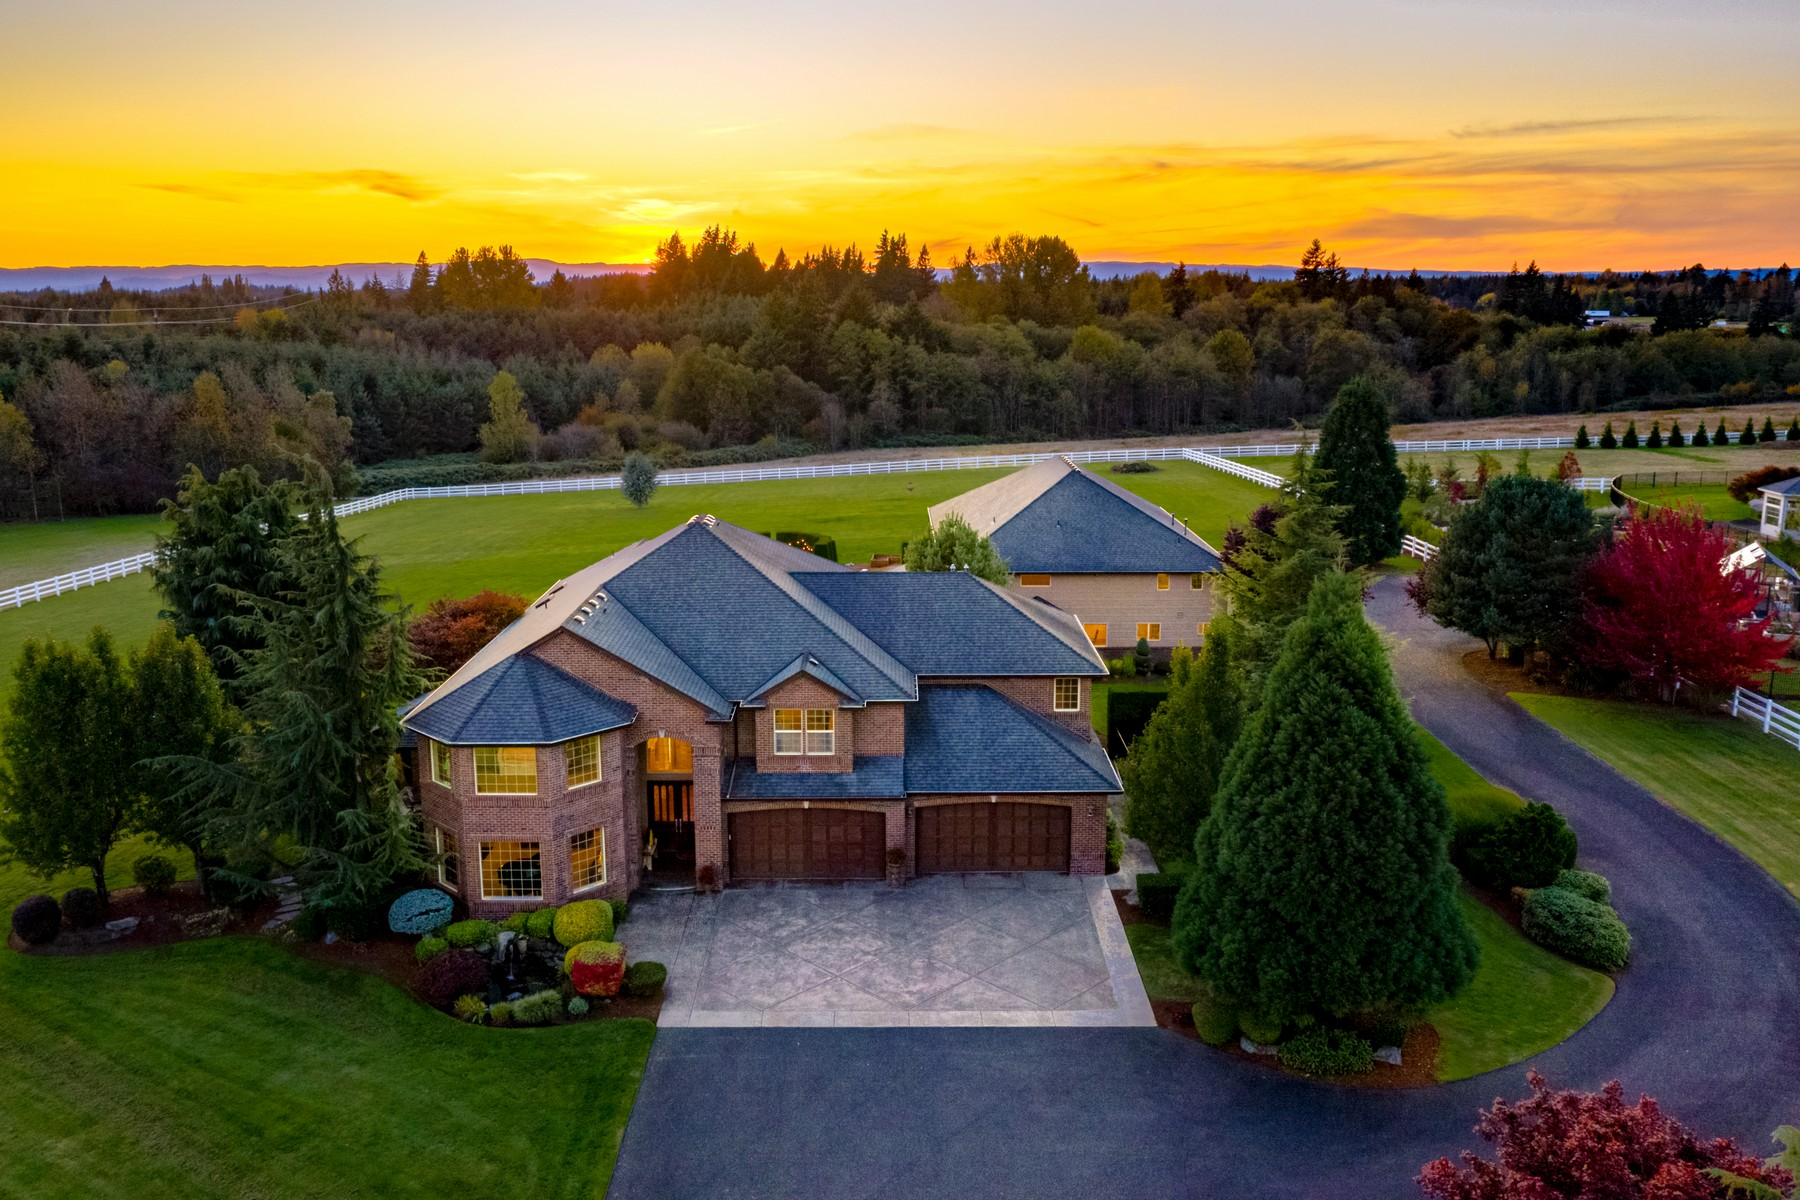 Single Family Homes for Sale at 5 AC Estate w/ RV & Separate Apt - Ridgefield, WA 30100 NW 18TH PL Ridgefield, Washington 98642 United States